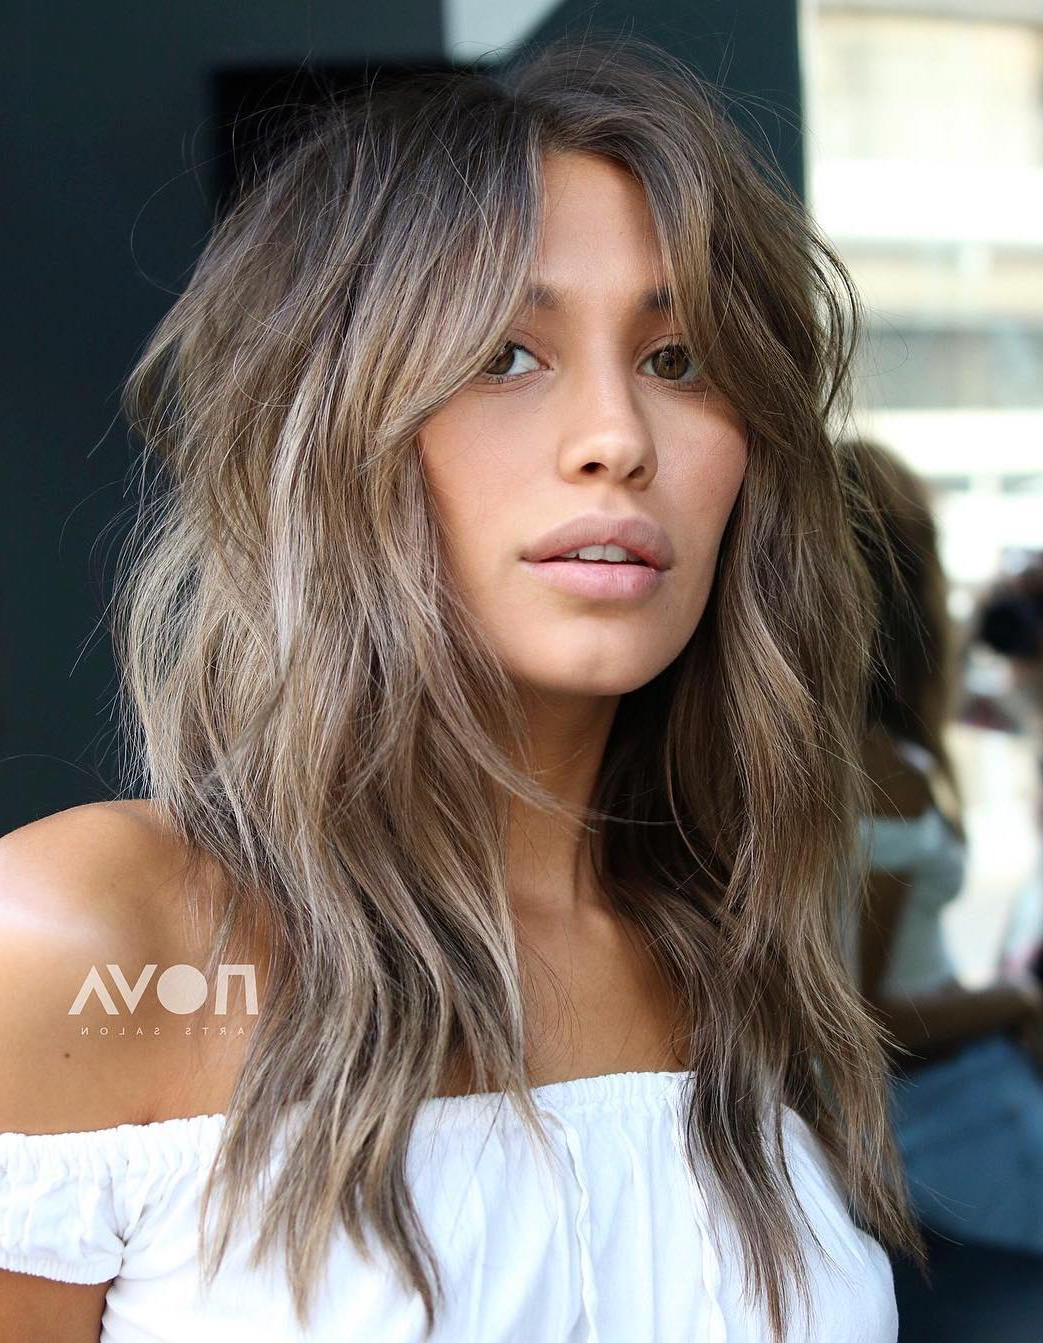 40 Modern Shag Haircuts For Women To Make A Splash With Best And Newest Long Curly Shag Hairstyles With Bangs (View 16 of 20)